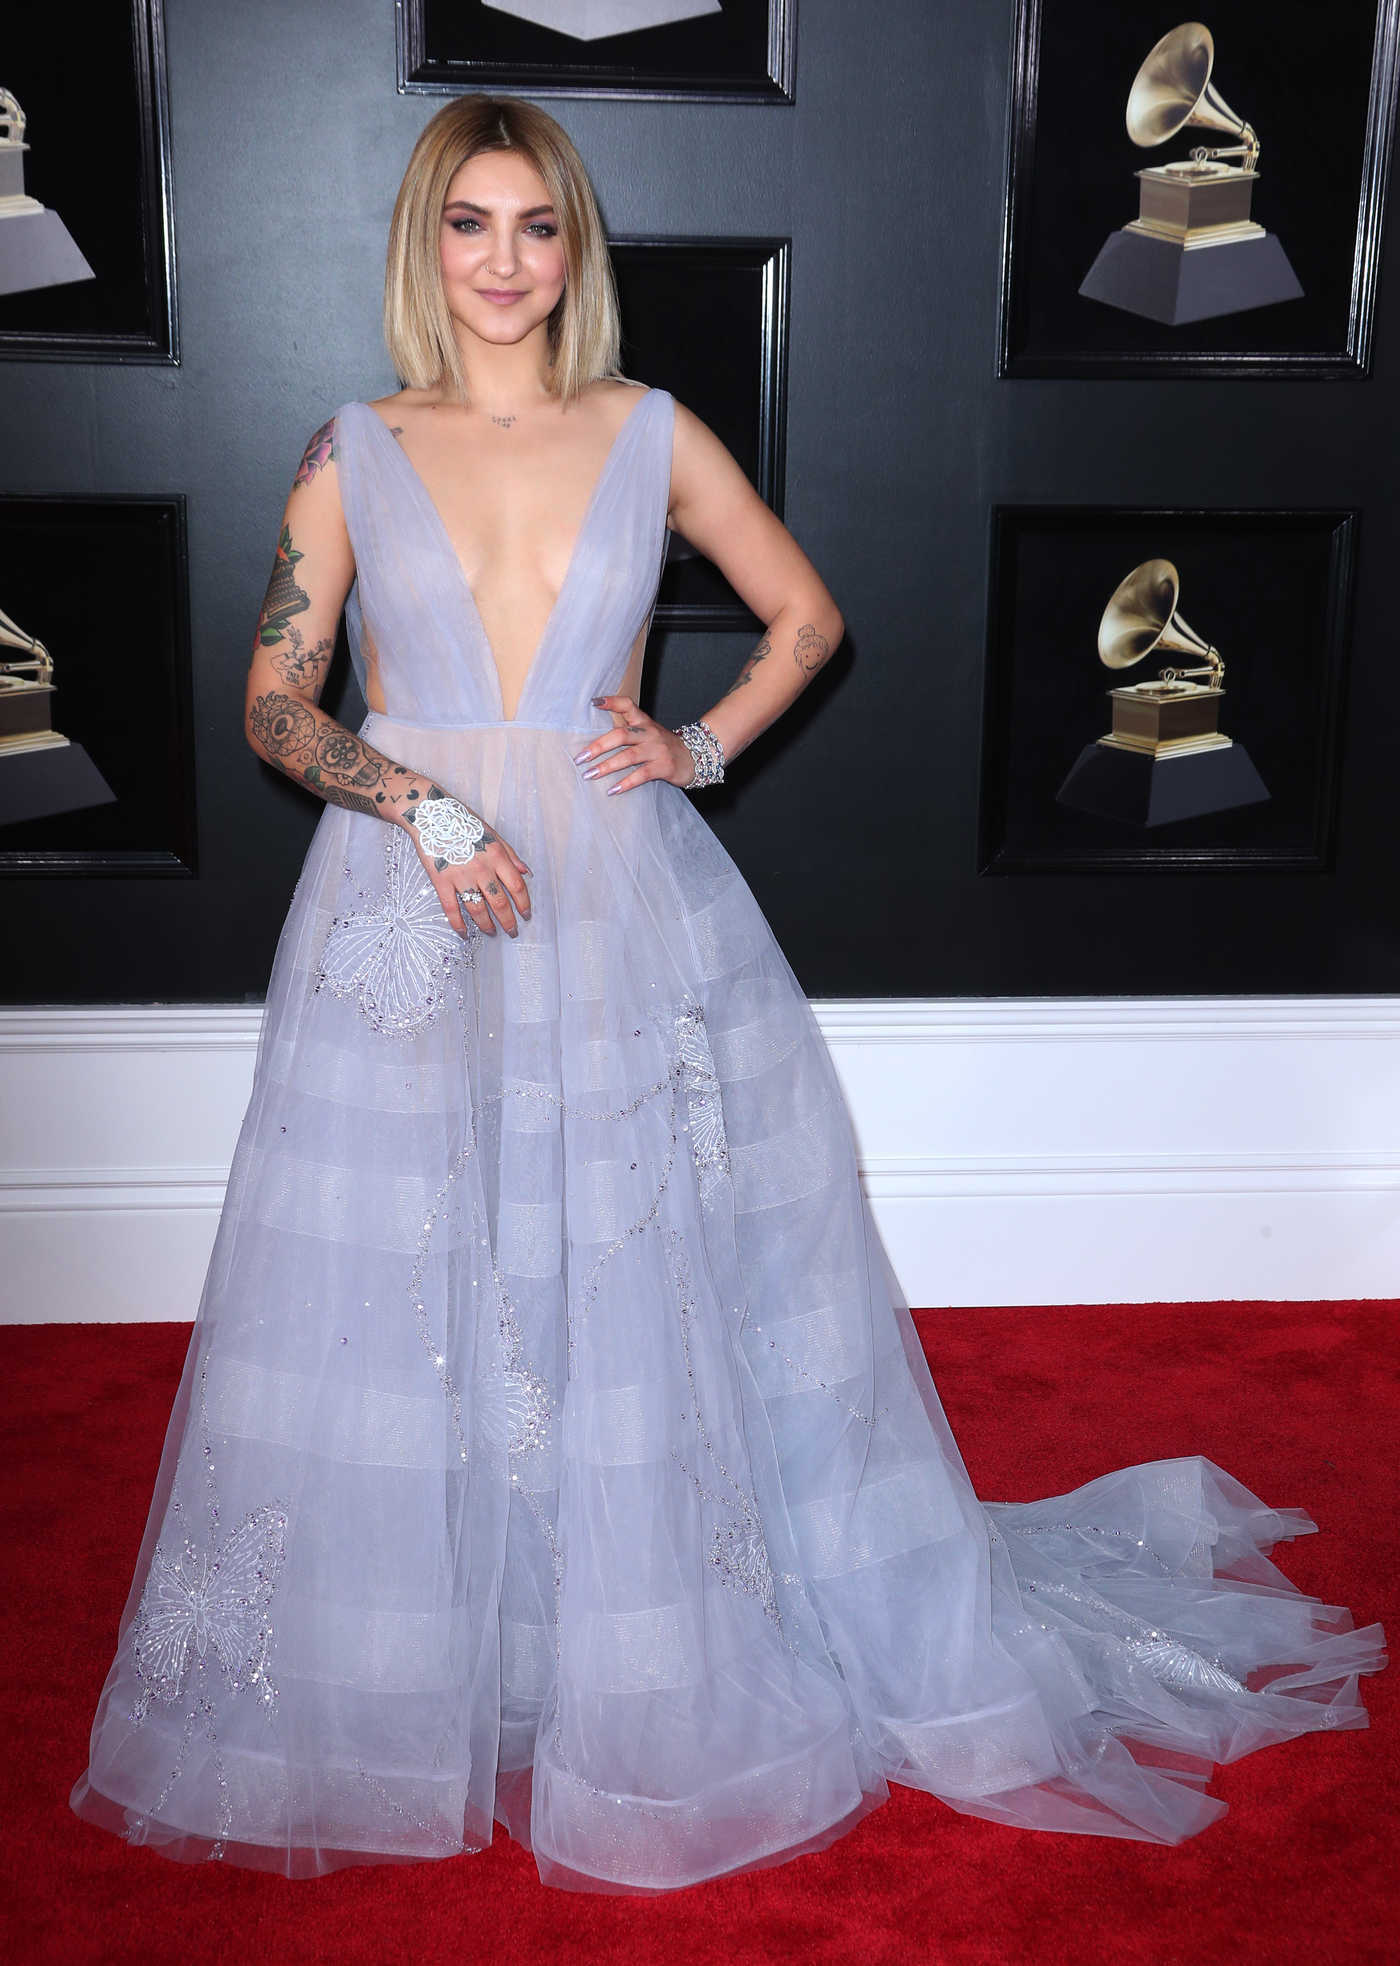 Julia Michaels at the 60th Annual Grammy Awards at Madison Square Garden in New York City 01/28/2018